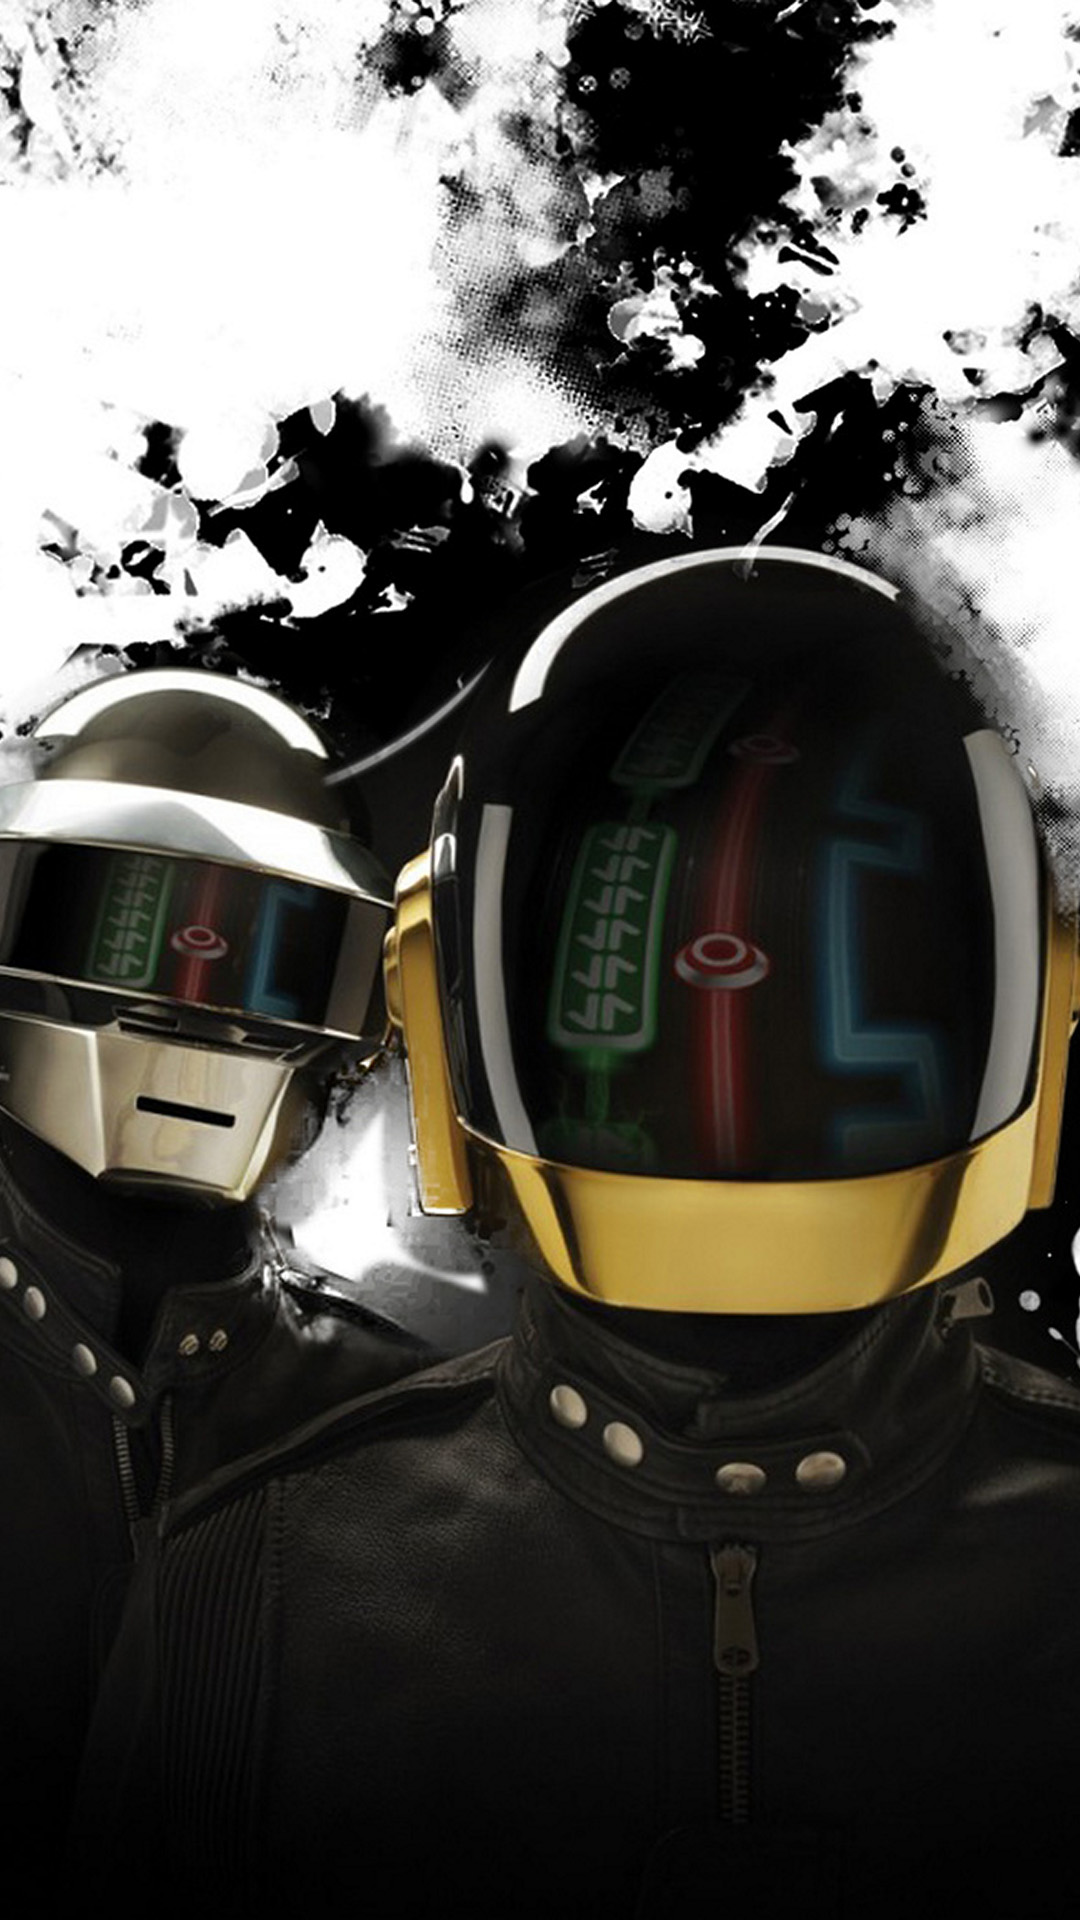 Samsung Galaxy Note 3 Wallpapers: Daft Punk Android